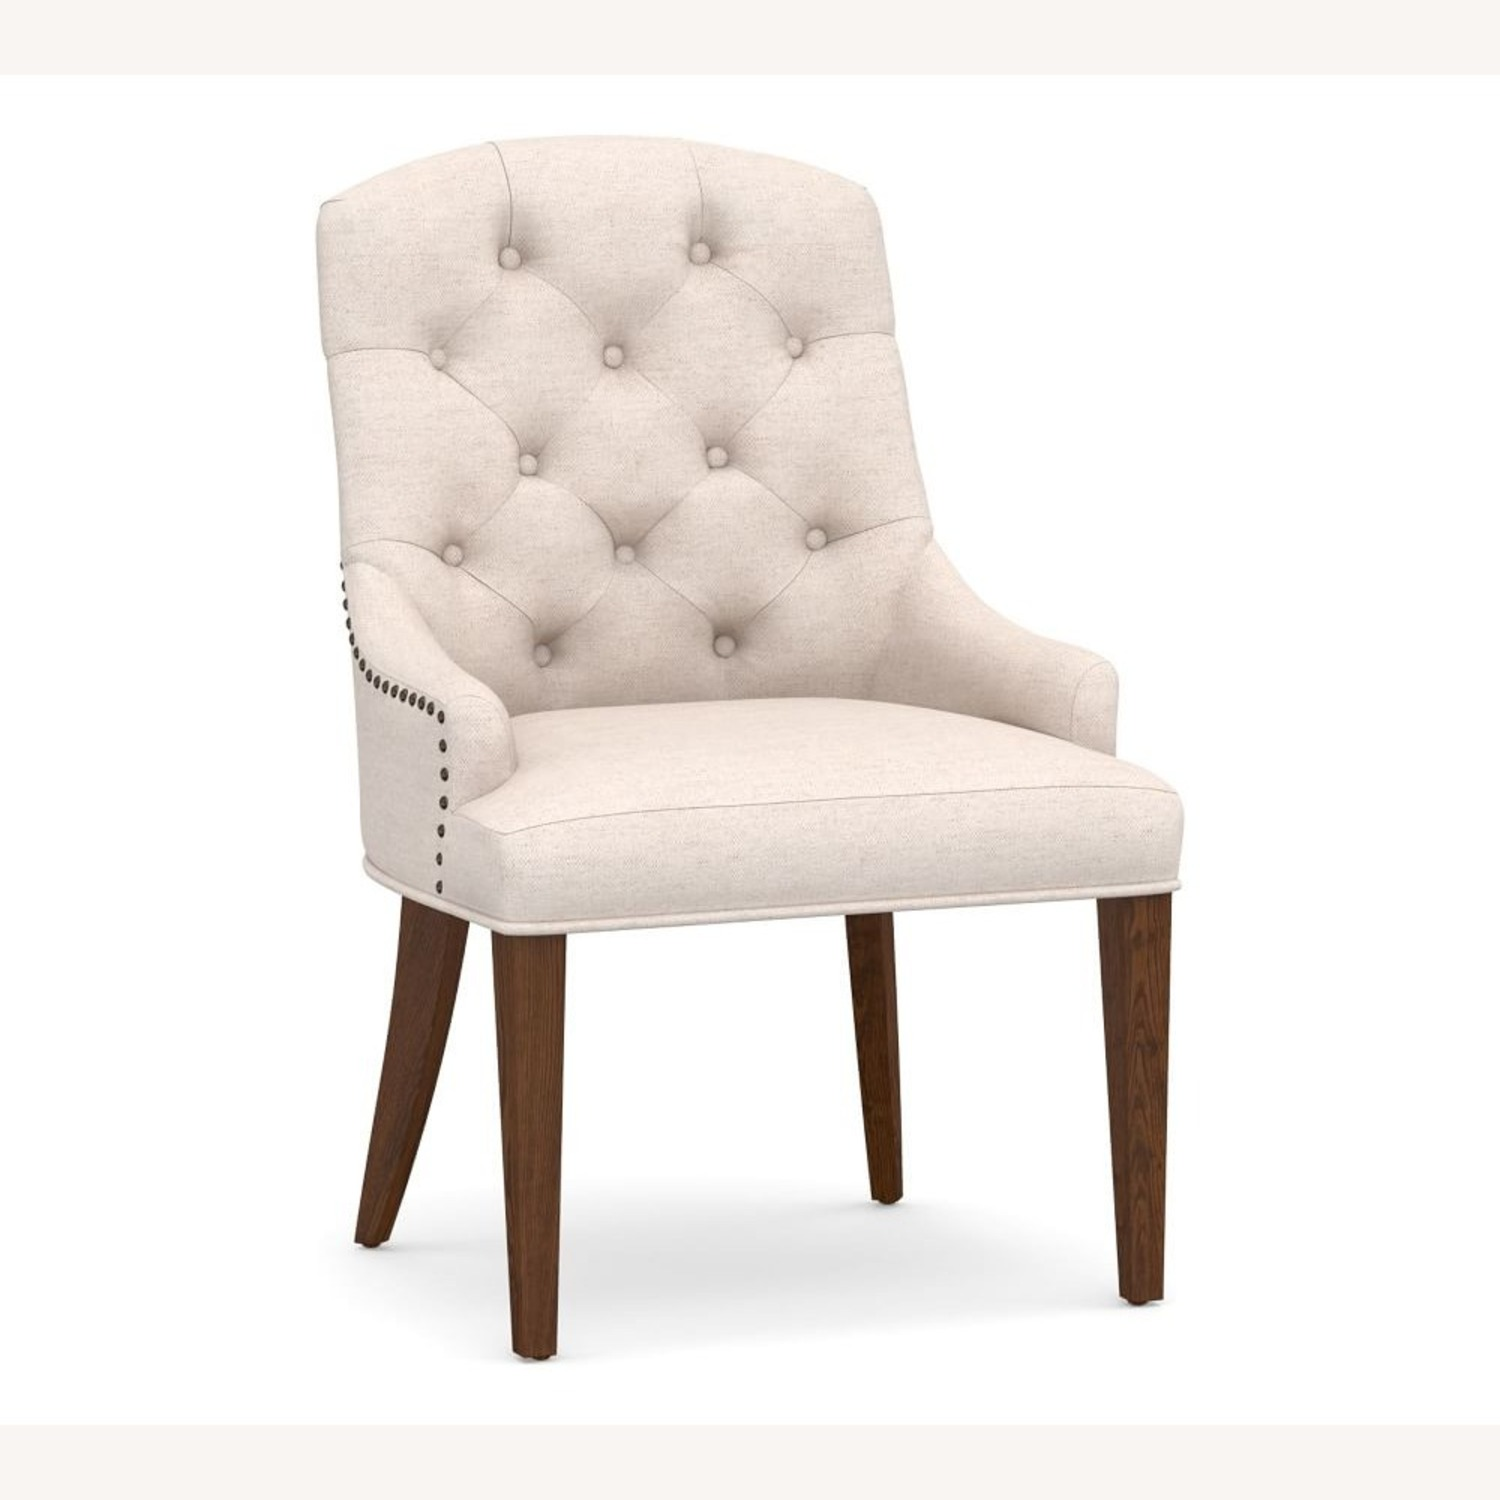 Pottery Barn Lorraine Upholstered Tufted Armchair - image-1